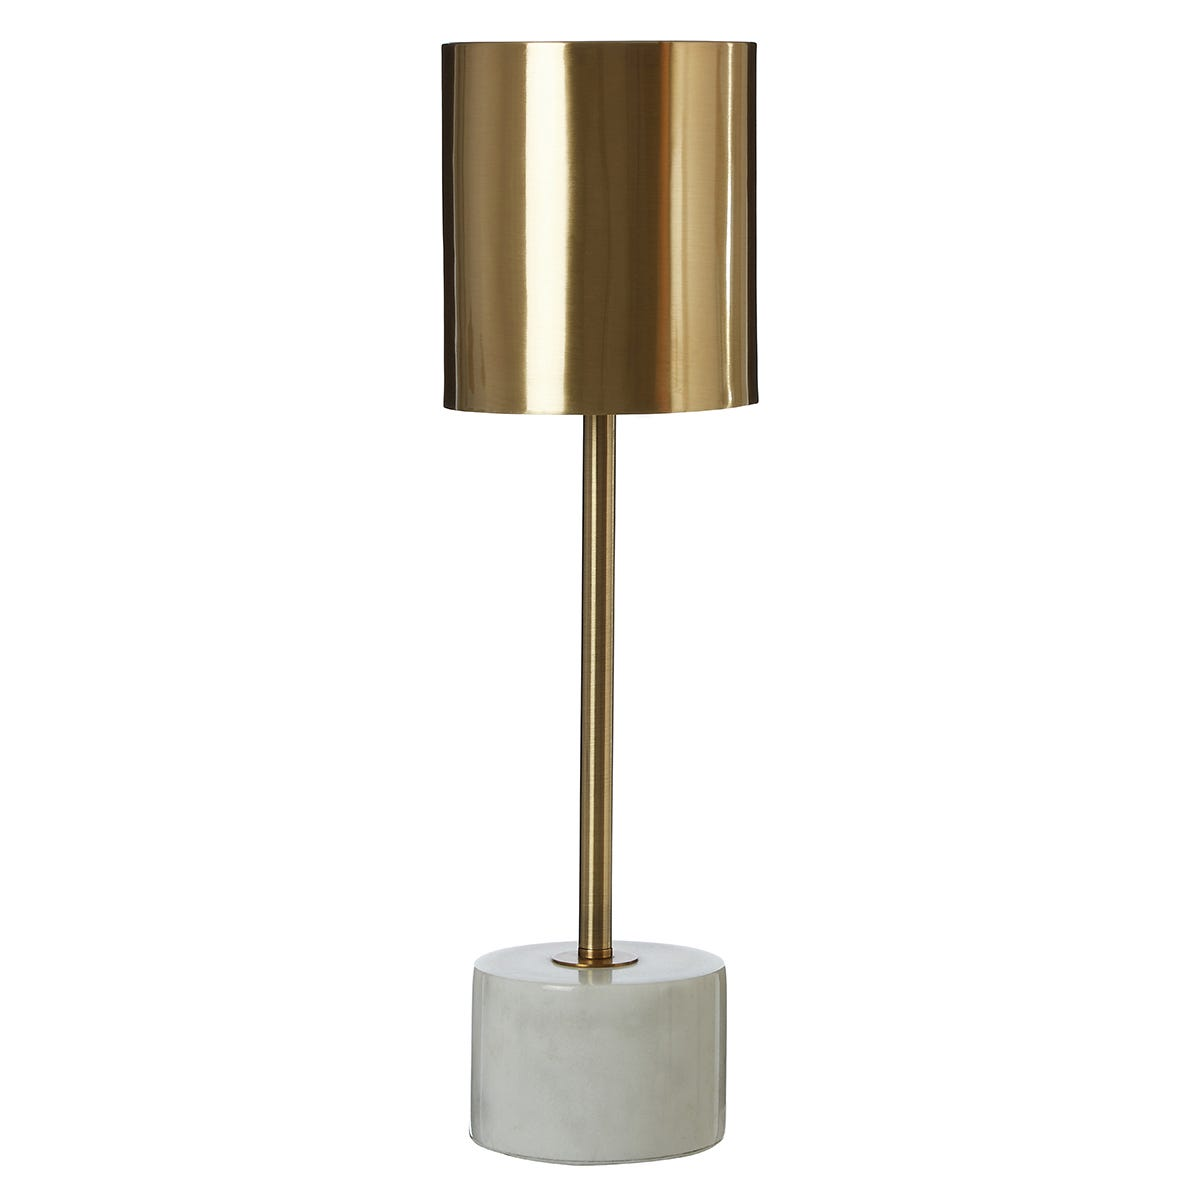 Premier Housewares Palais Table Lamp with White Marble Base & Brushed Brass Finish Shade